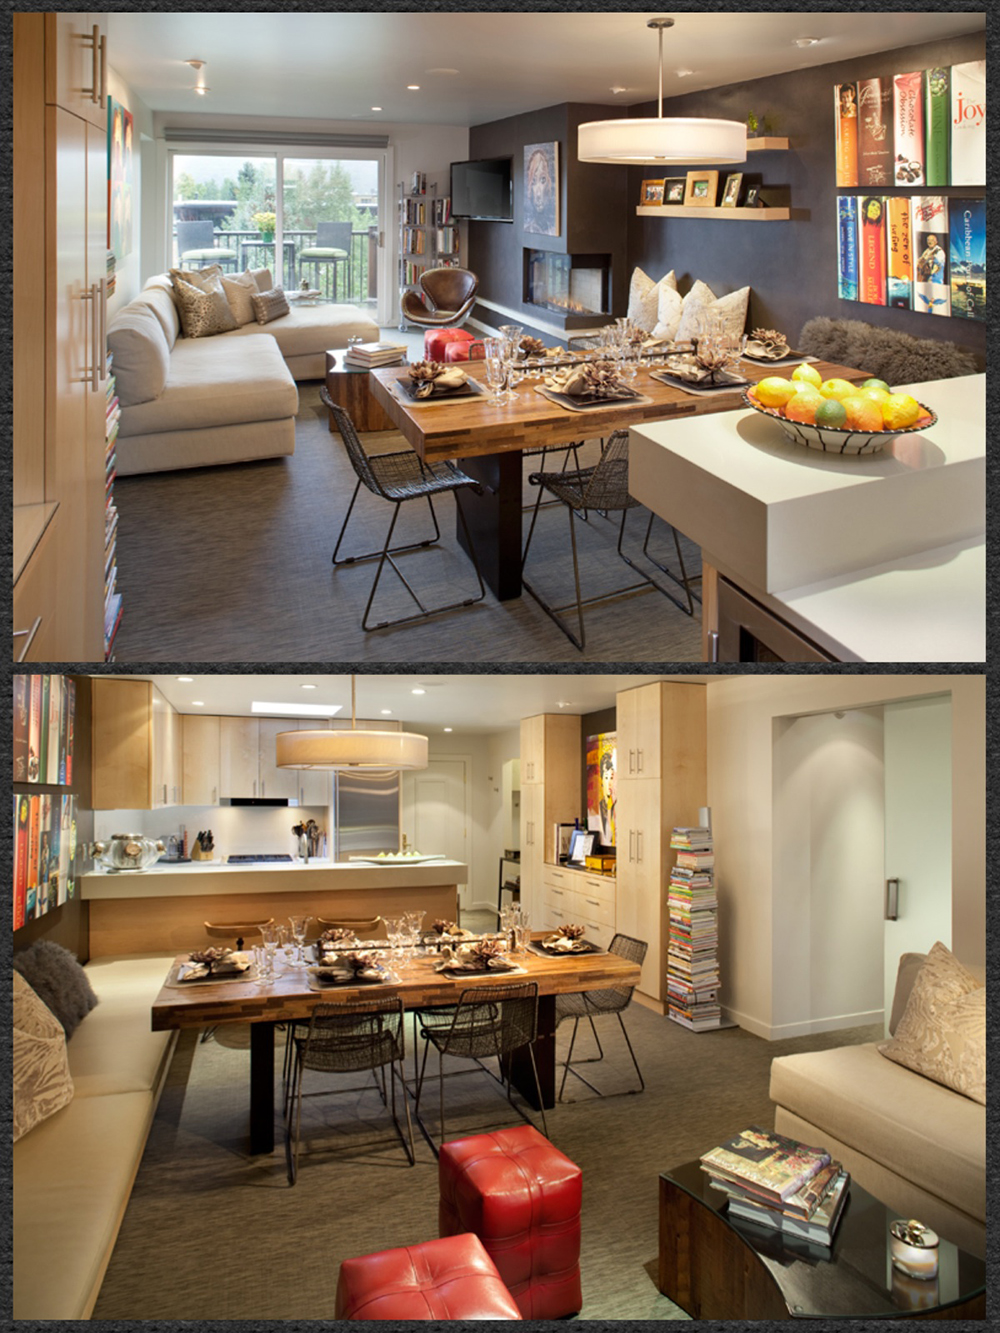 Top: Living Area and Kitchen Bar-BMP Bottom: Kitchen and Dining-BMP